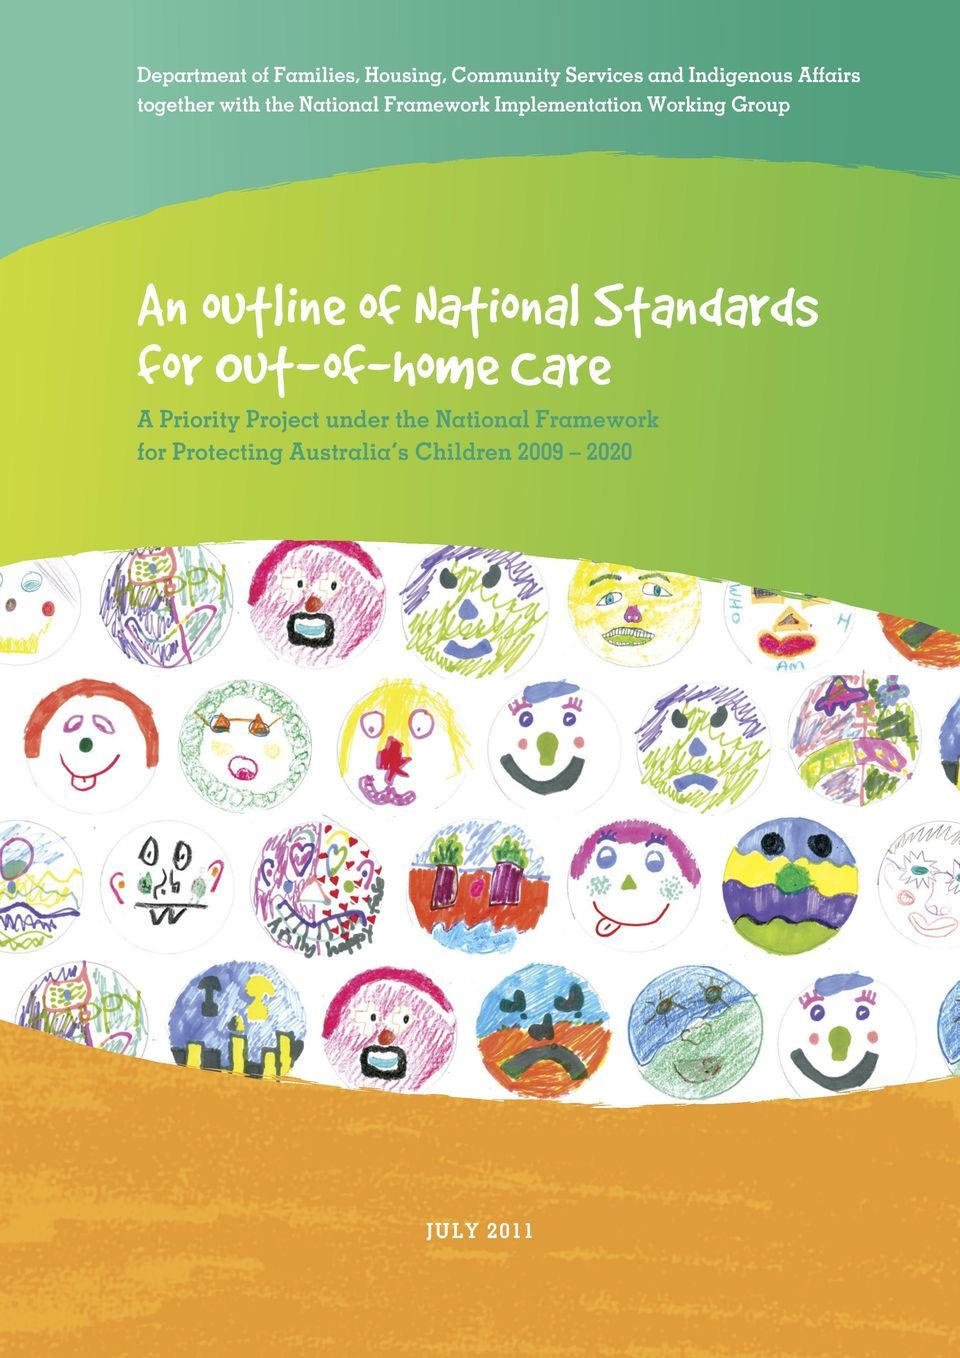 outline of National Standards for Out of home Care A Priority Project